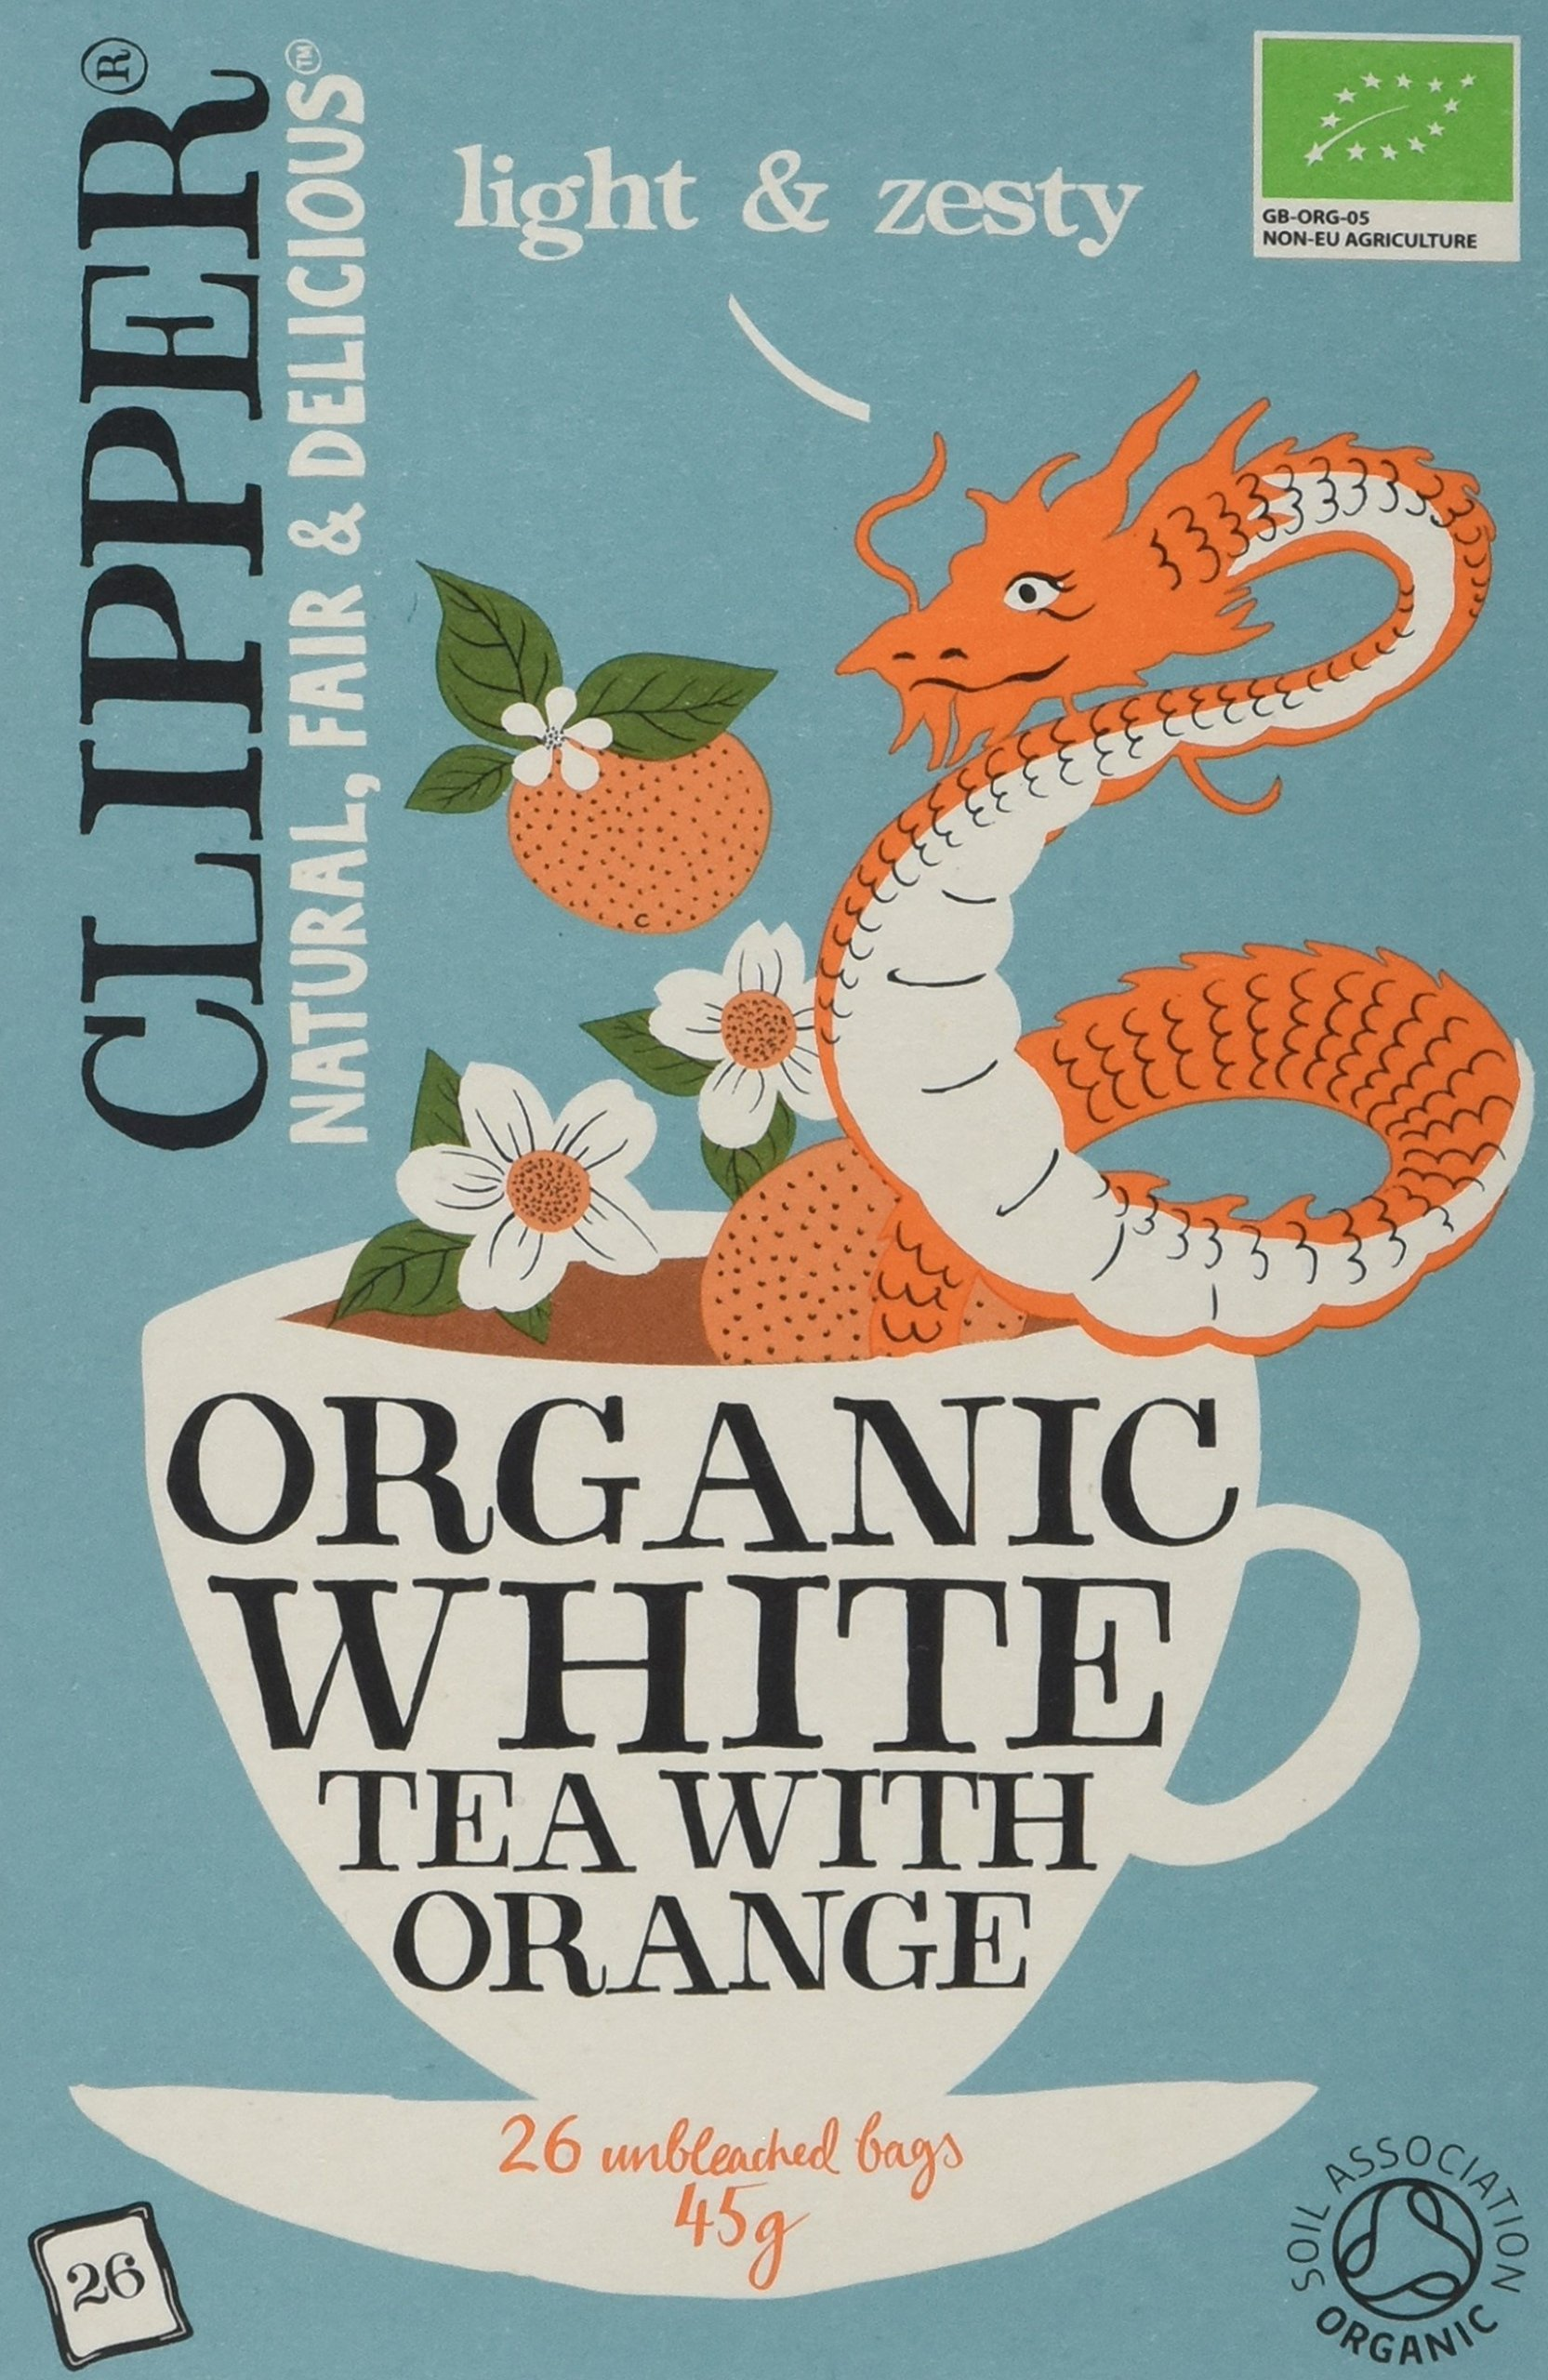 Clipper organic white tea bundle (soil association) (white tea) (6 packs of 26 bags) (156 bags) (a fruity tea with aromas of orange) (brews in 1-3 minutes)